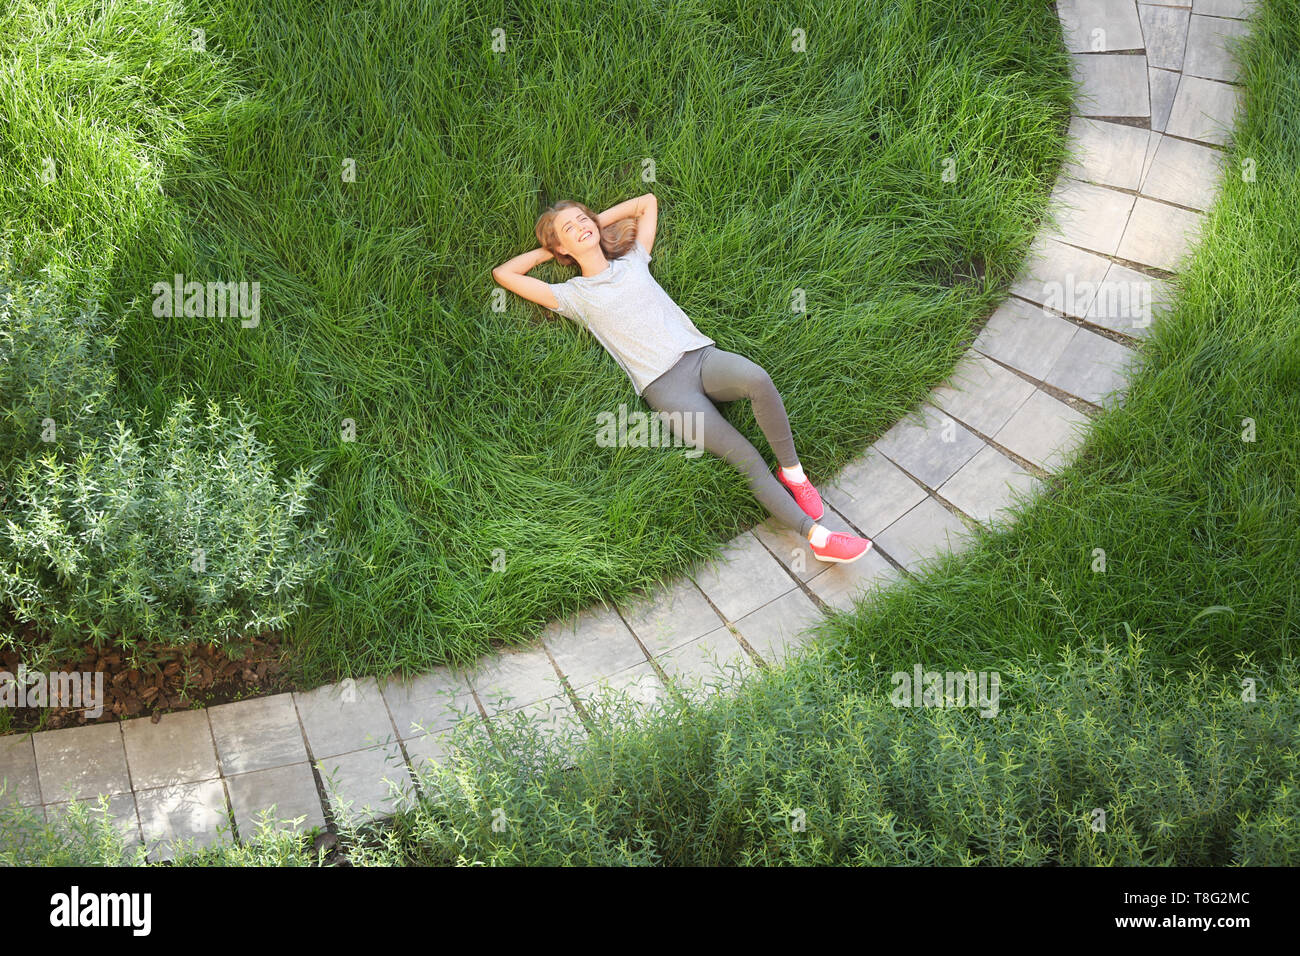 Sporty young woman lying on green grass in park - Stock Image